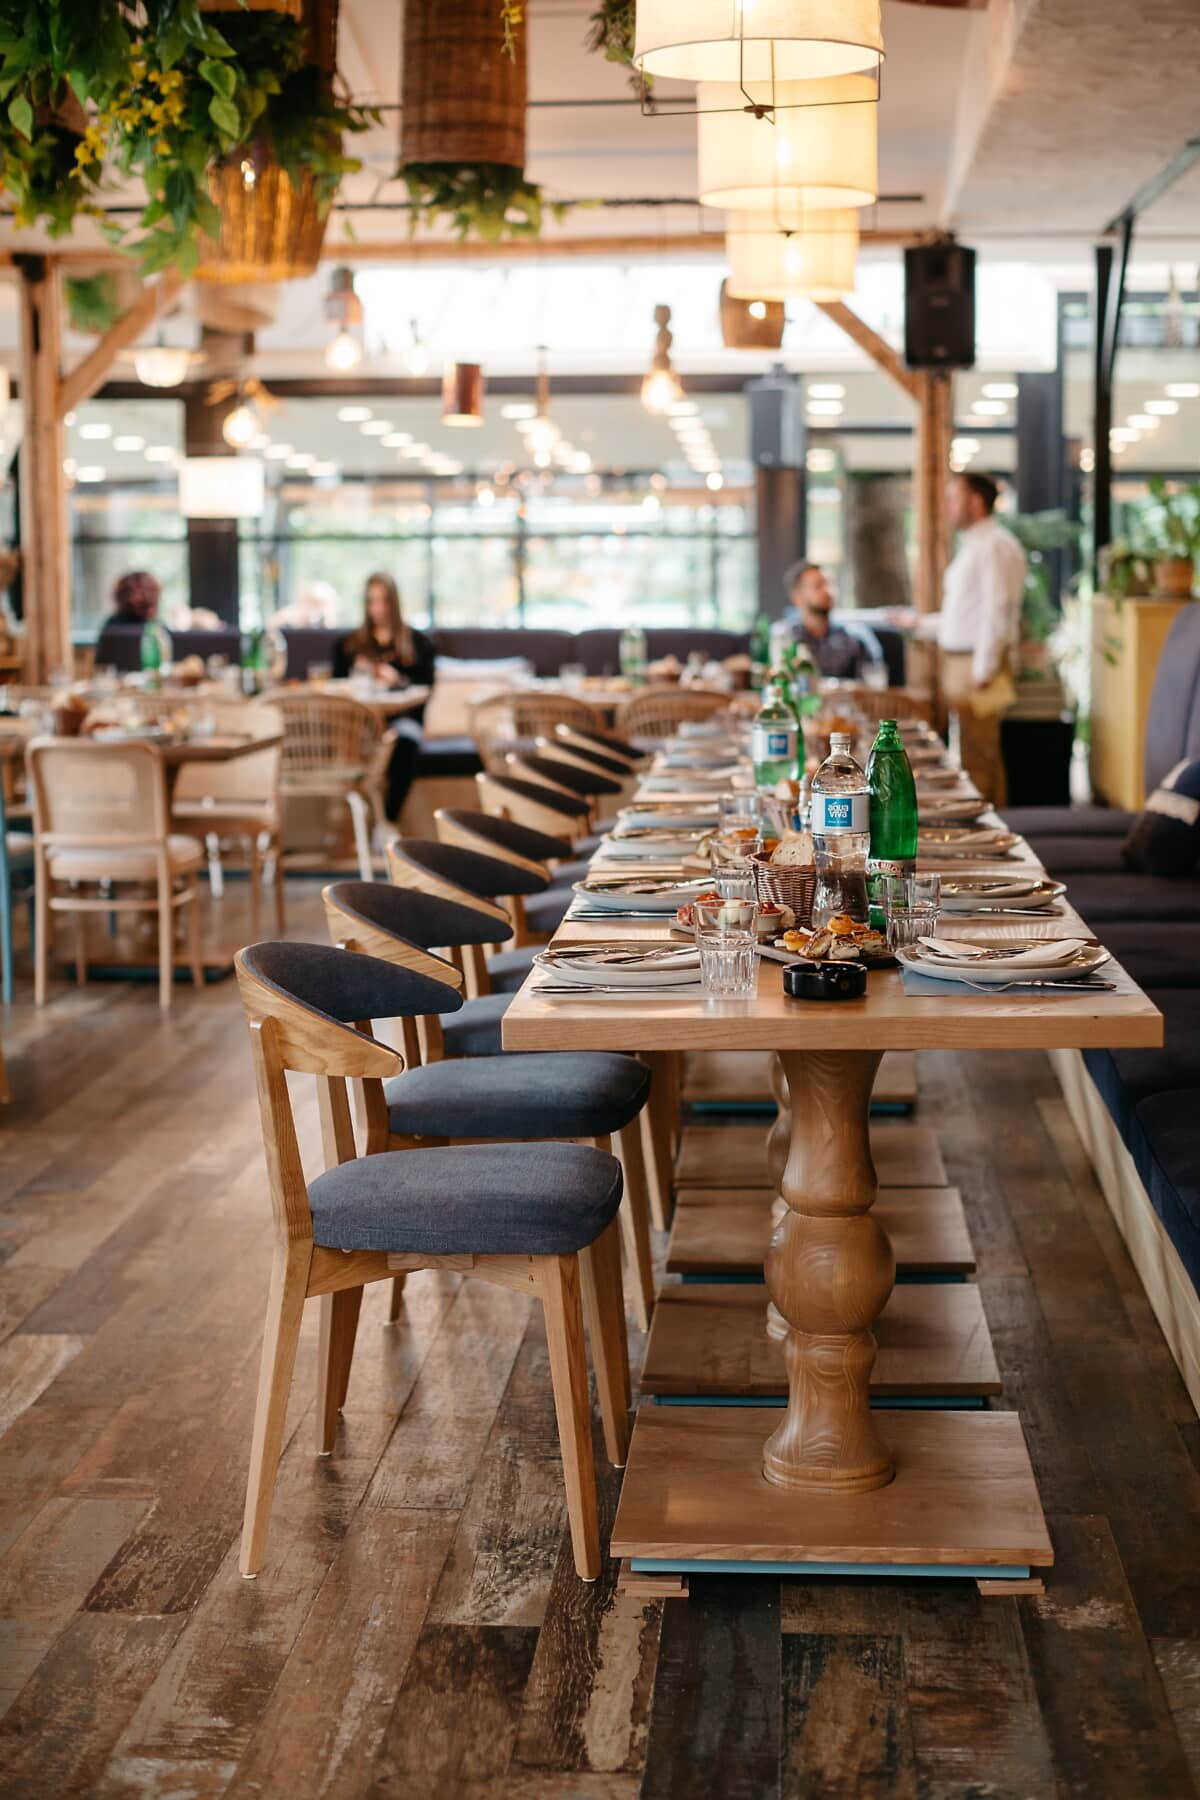 wooden, furniture, restaurant, people, tables, atmosphere, chairs, cafeteria, indoors, room